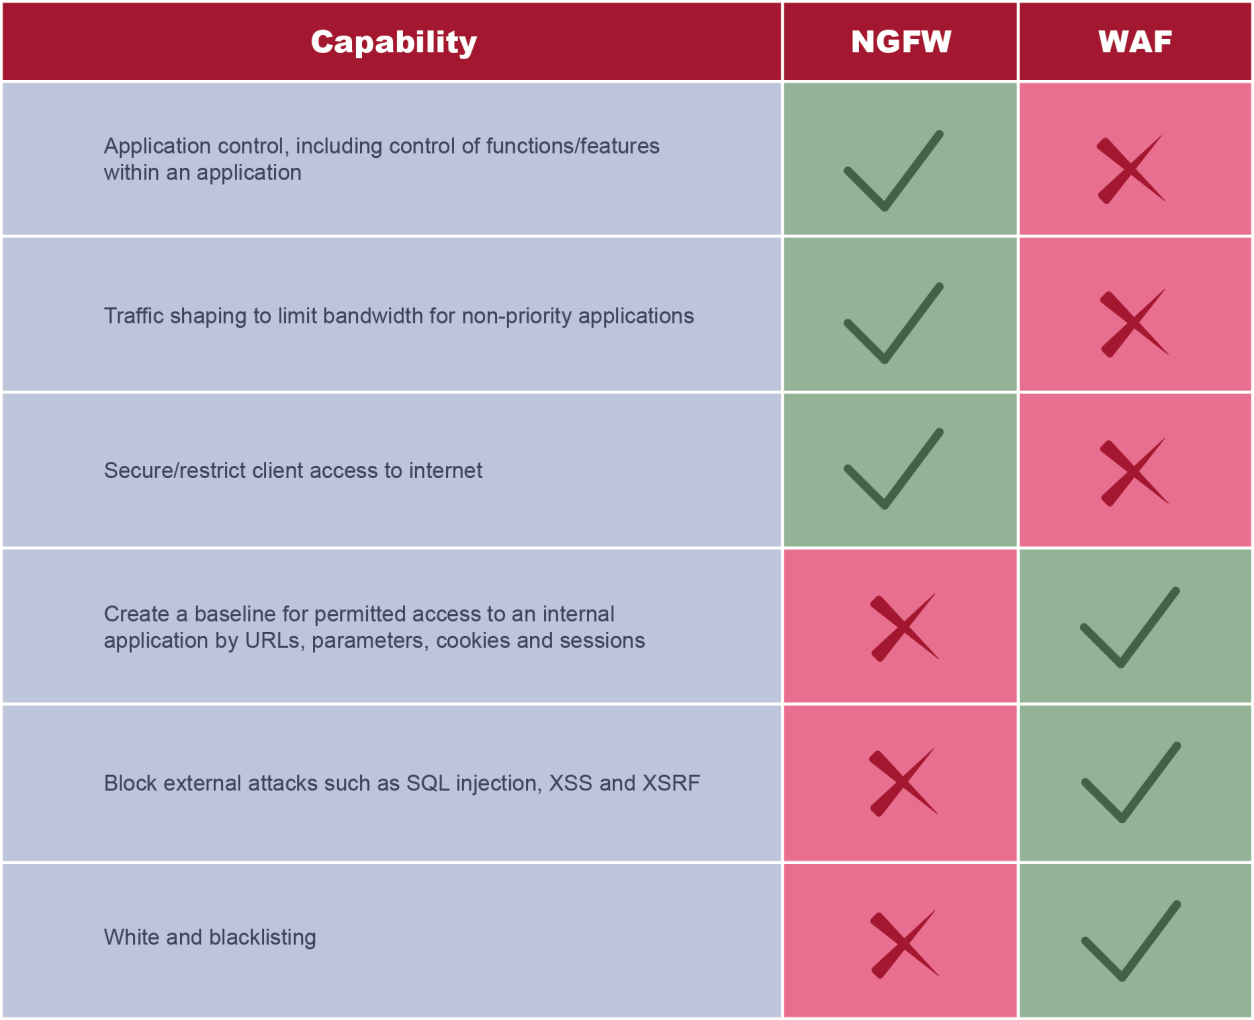 Capabilities of NGFW and WAF XSS = Cross-site scripting XSRF = Cross-sire request forgery Source: Ovum Incumbency is an issue when companies consider switching to cloud-based WAF While 8% of